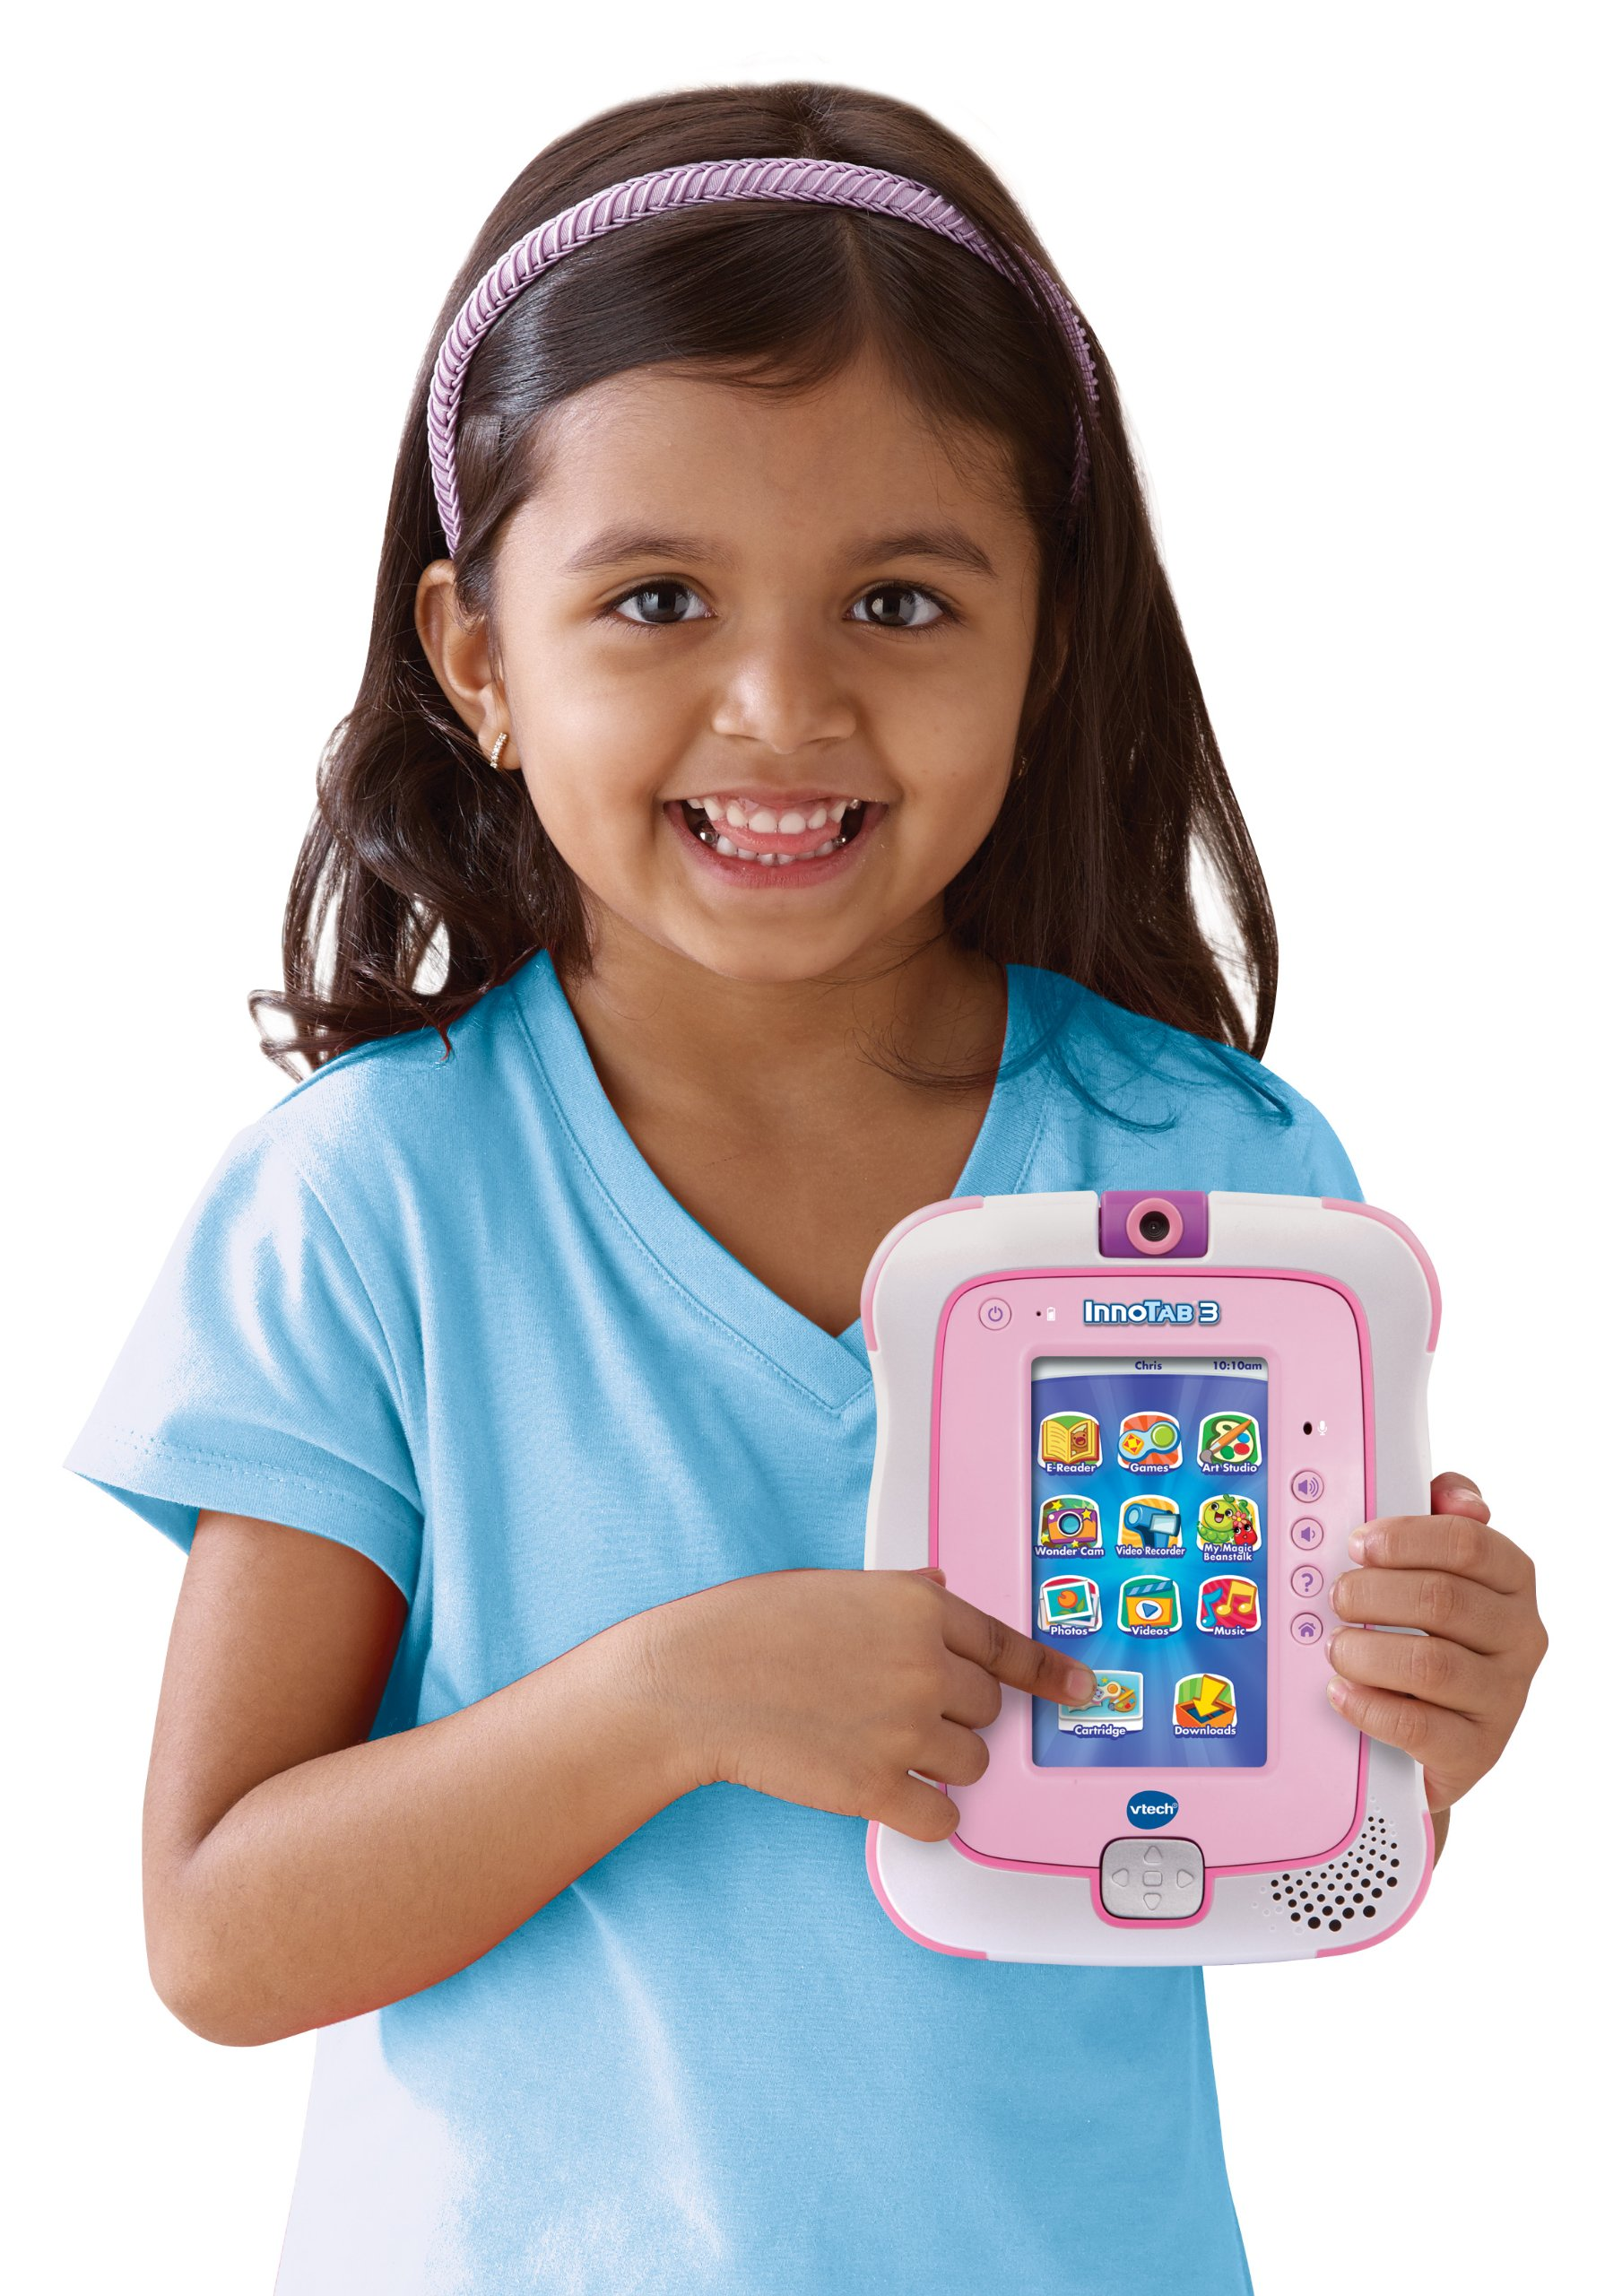 VTech InnoTab 3 The Learning App Tablet, Pink by VTech (Image #4)